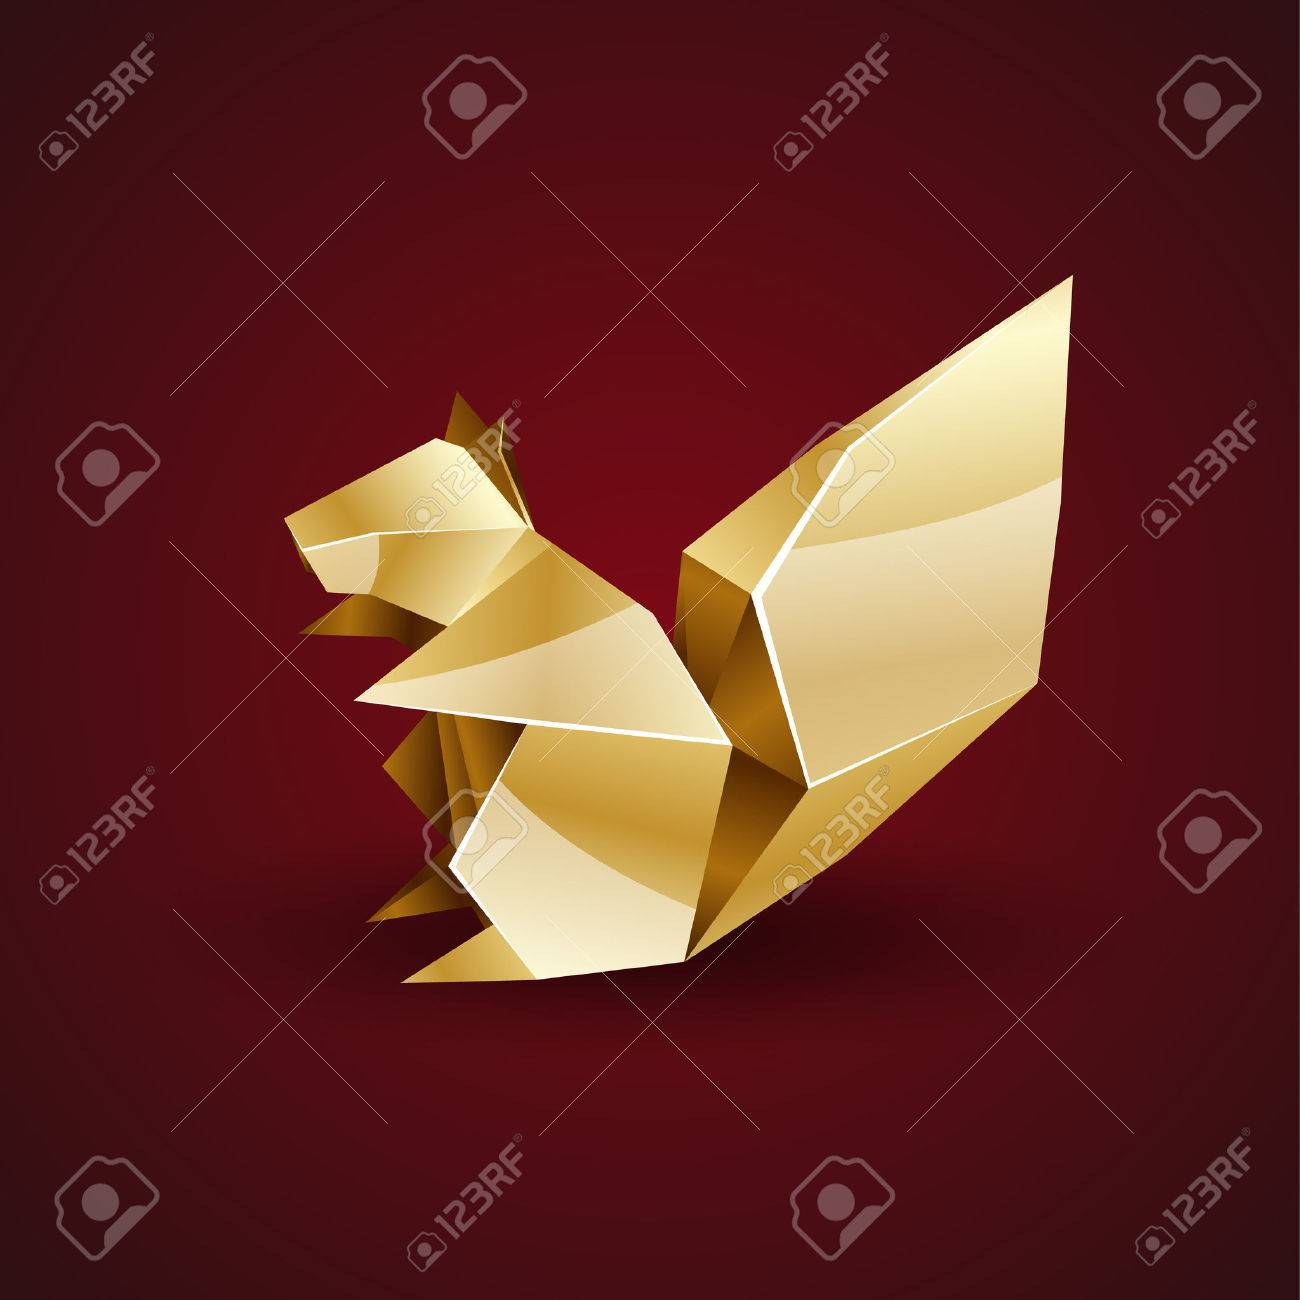 How to make a Paper Squirrel|Origami Squirrel-Easy Origami Tutorials|How to  make an origami squirrel - YouTube | 1300x1300